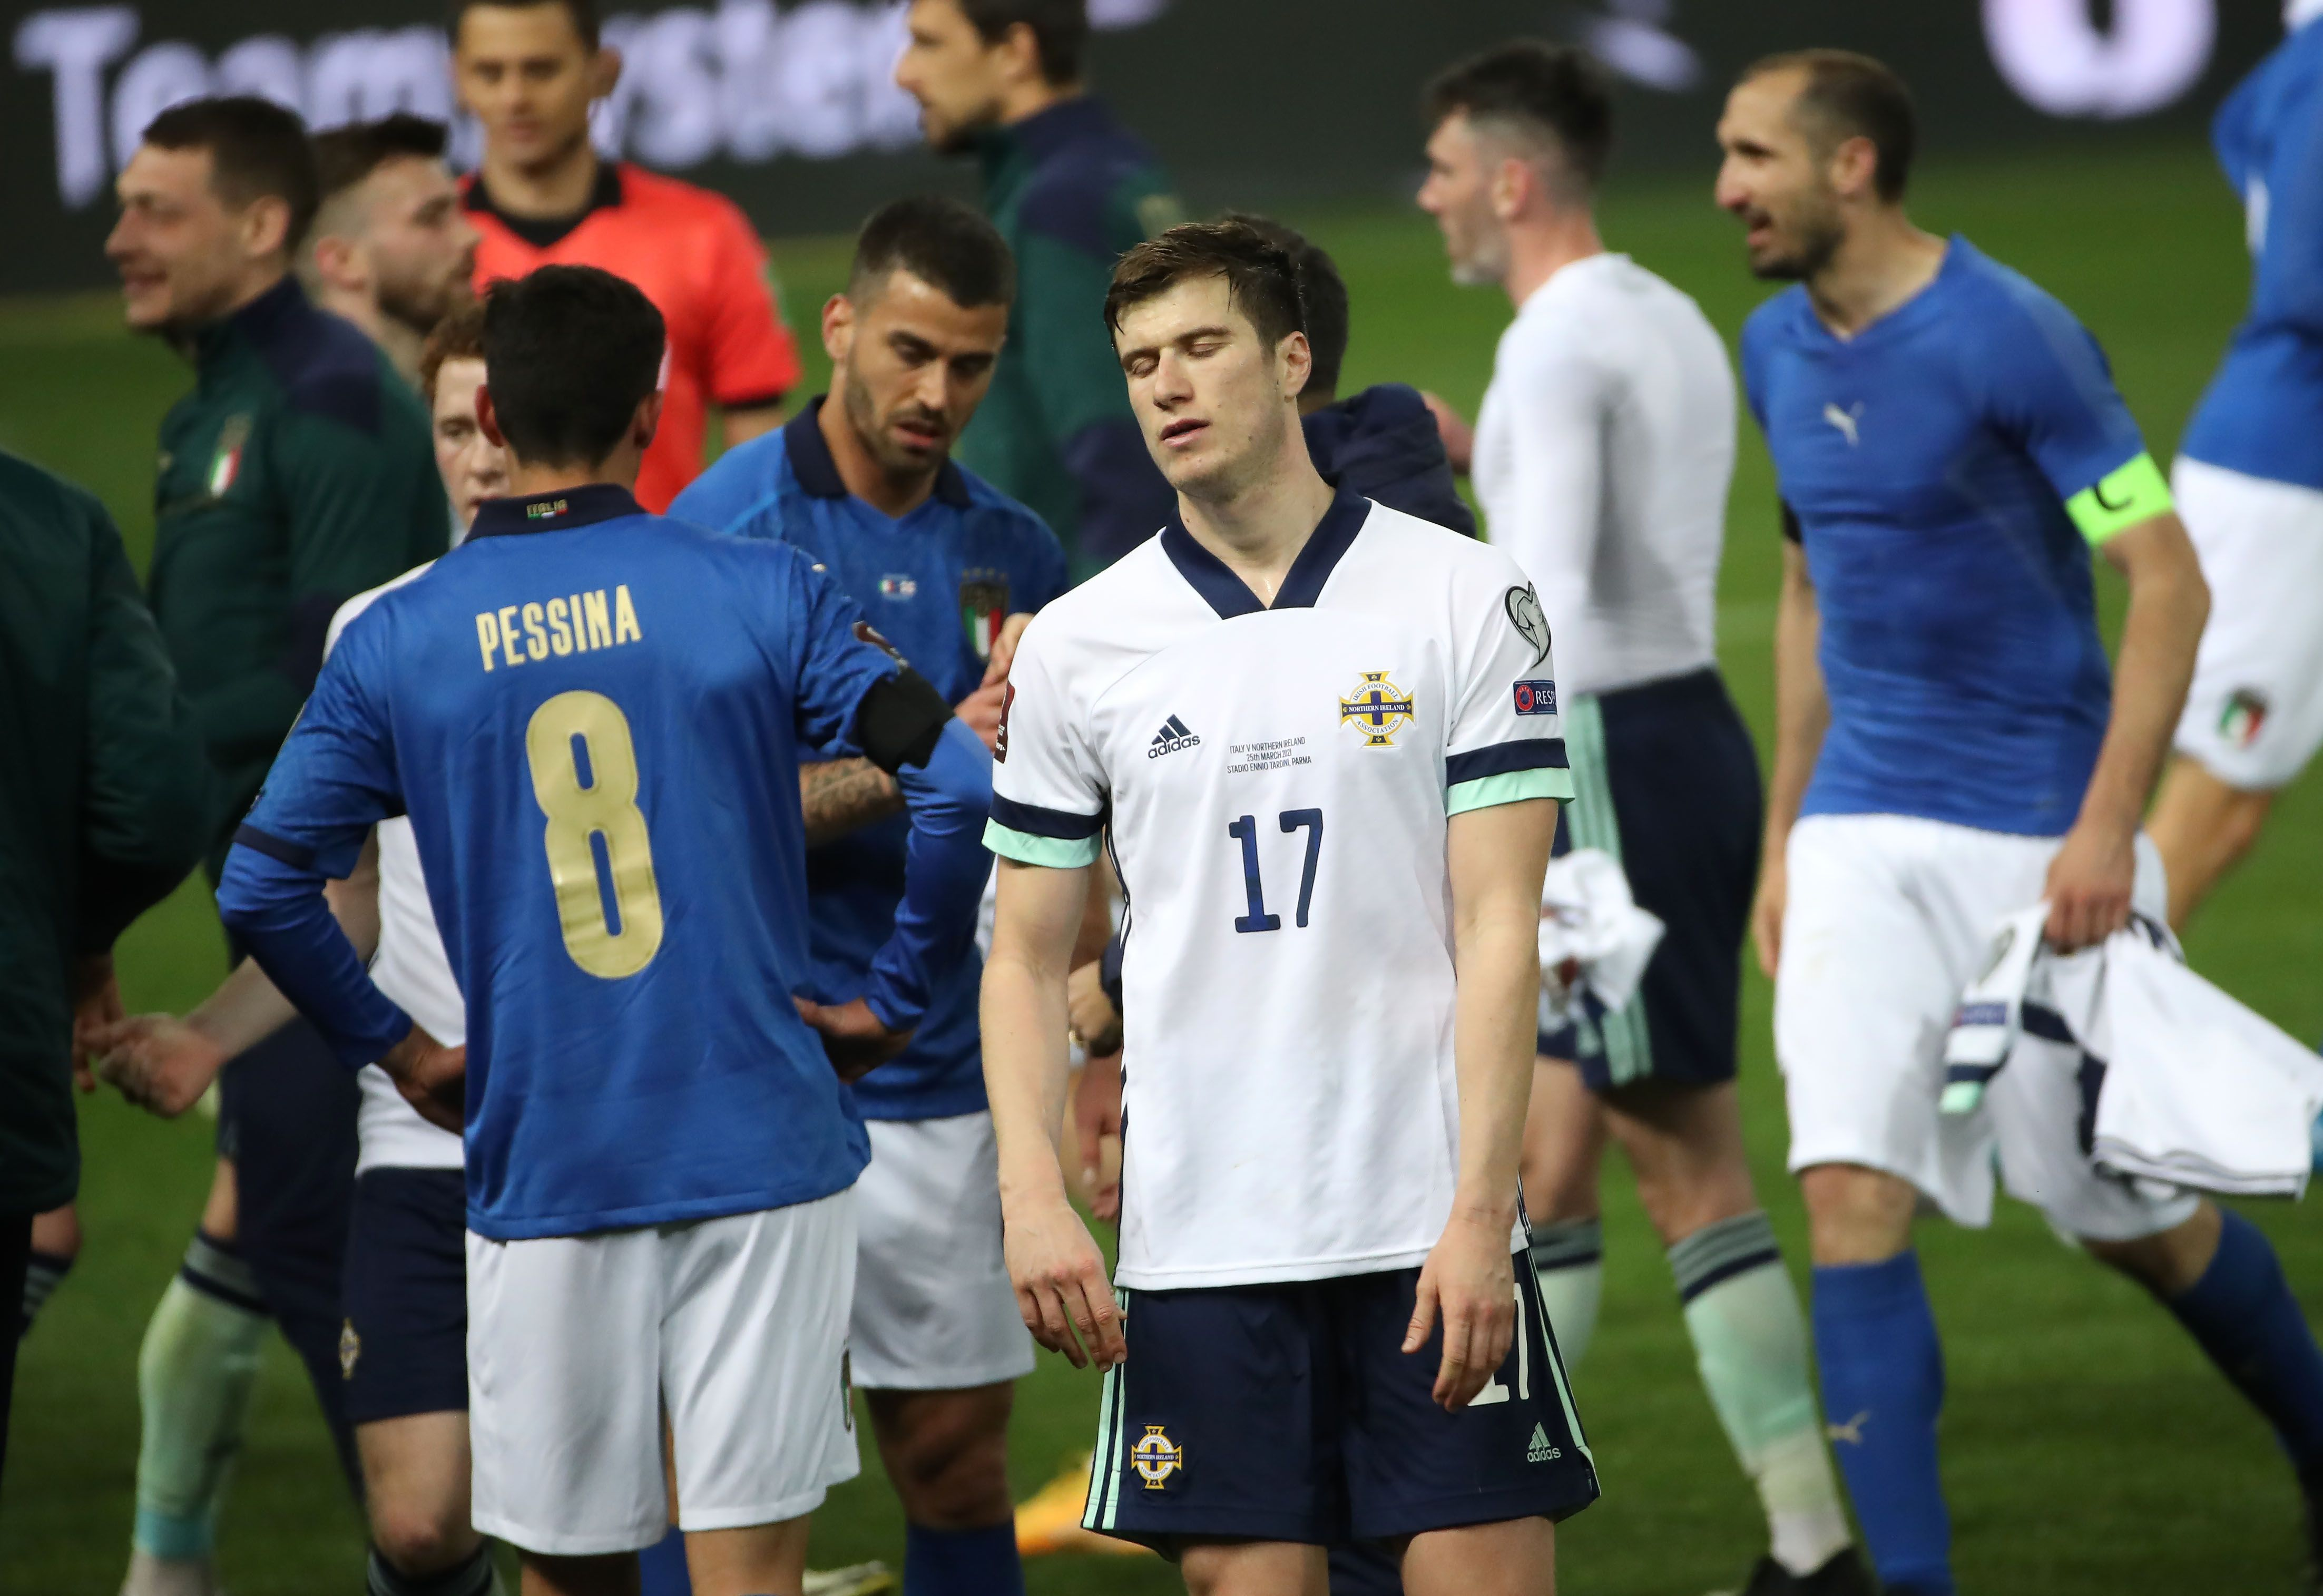 Northern Ireland defender Paddy McNair dejected at full-time after the 2-0 defeat